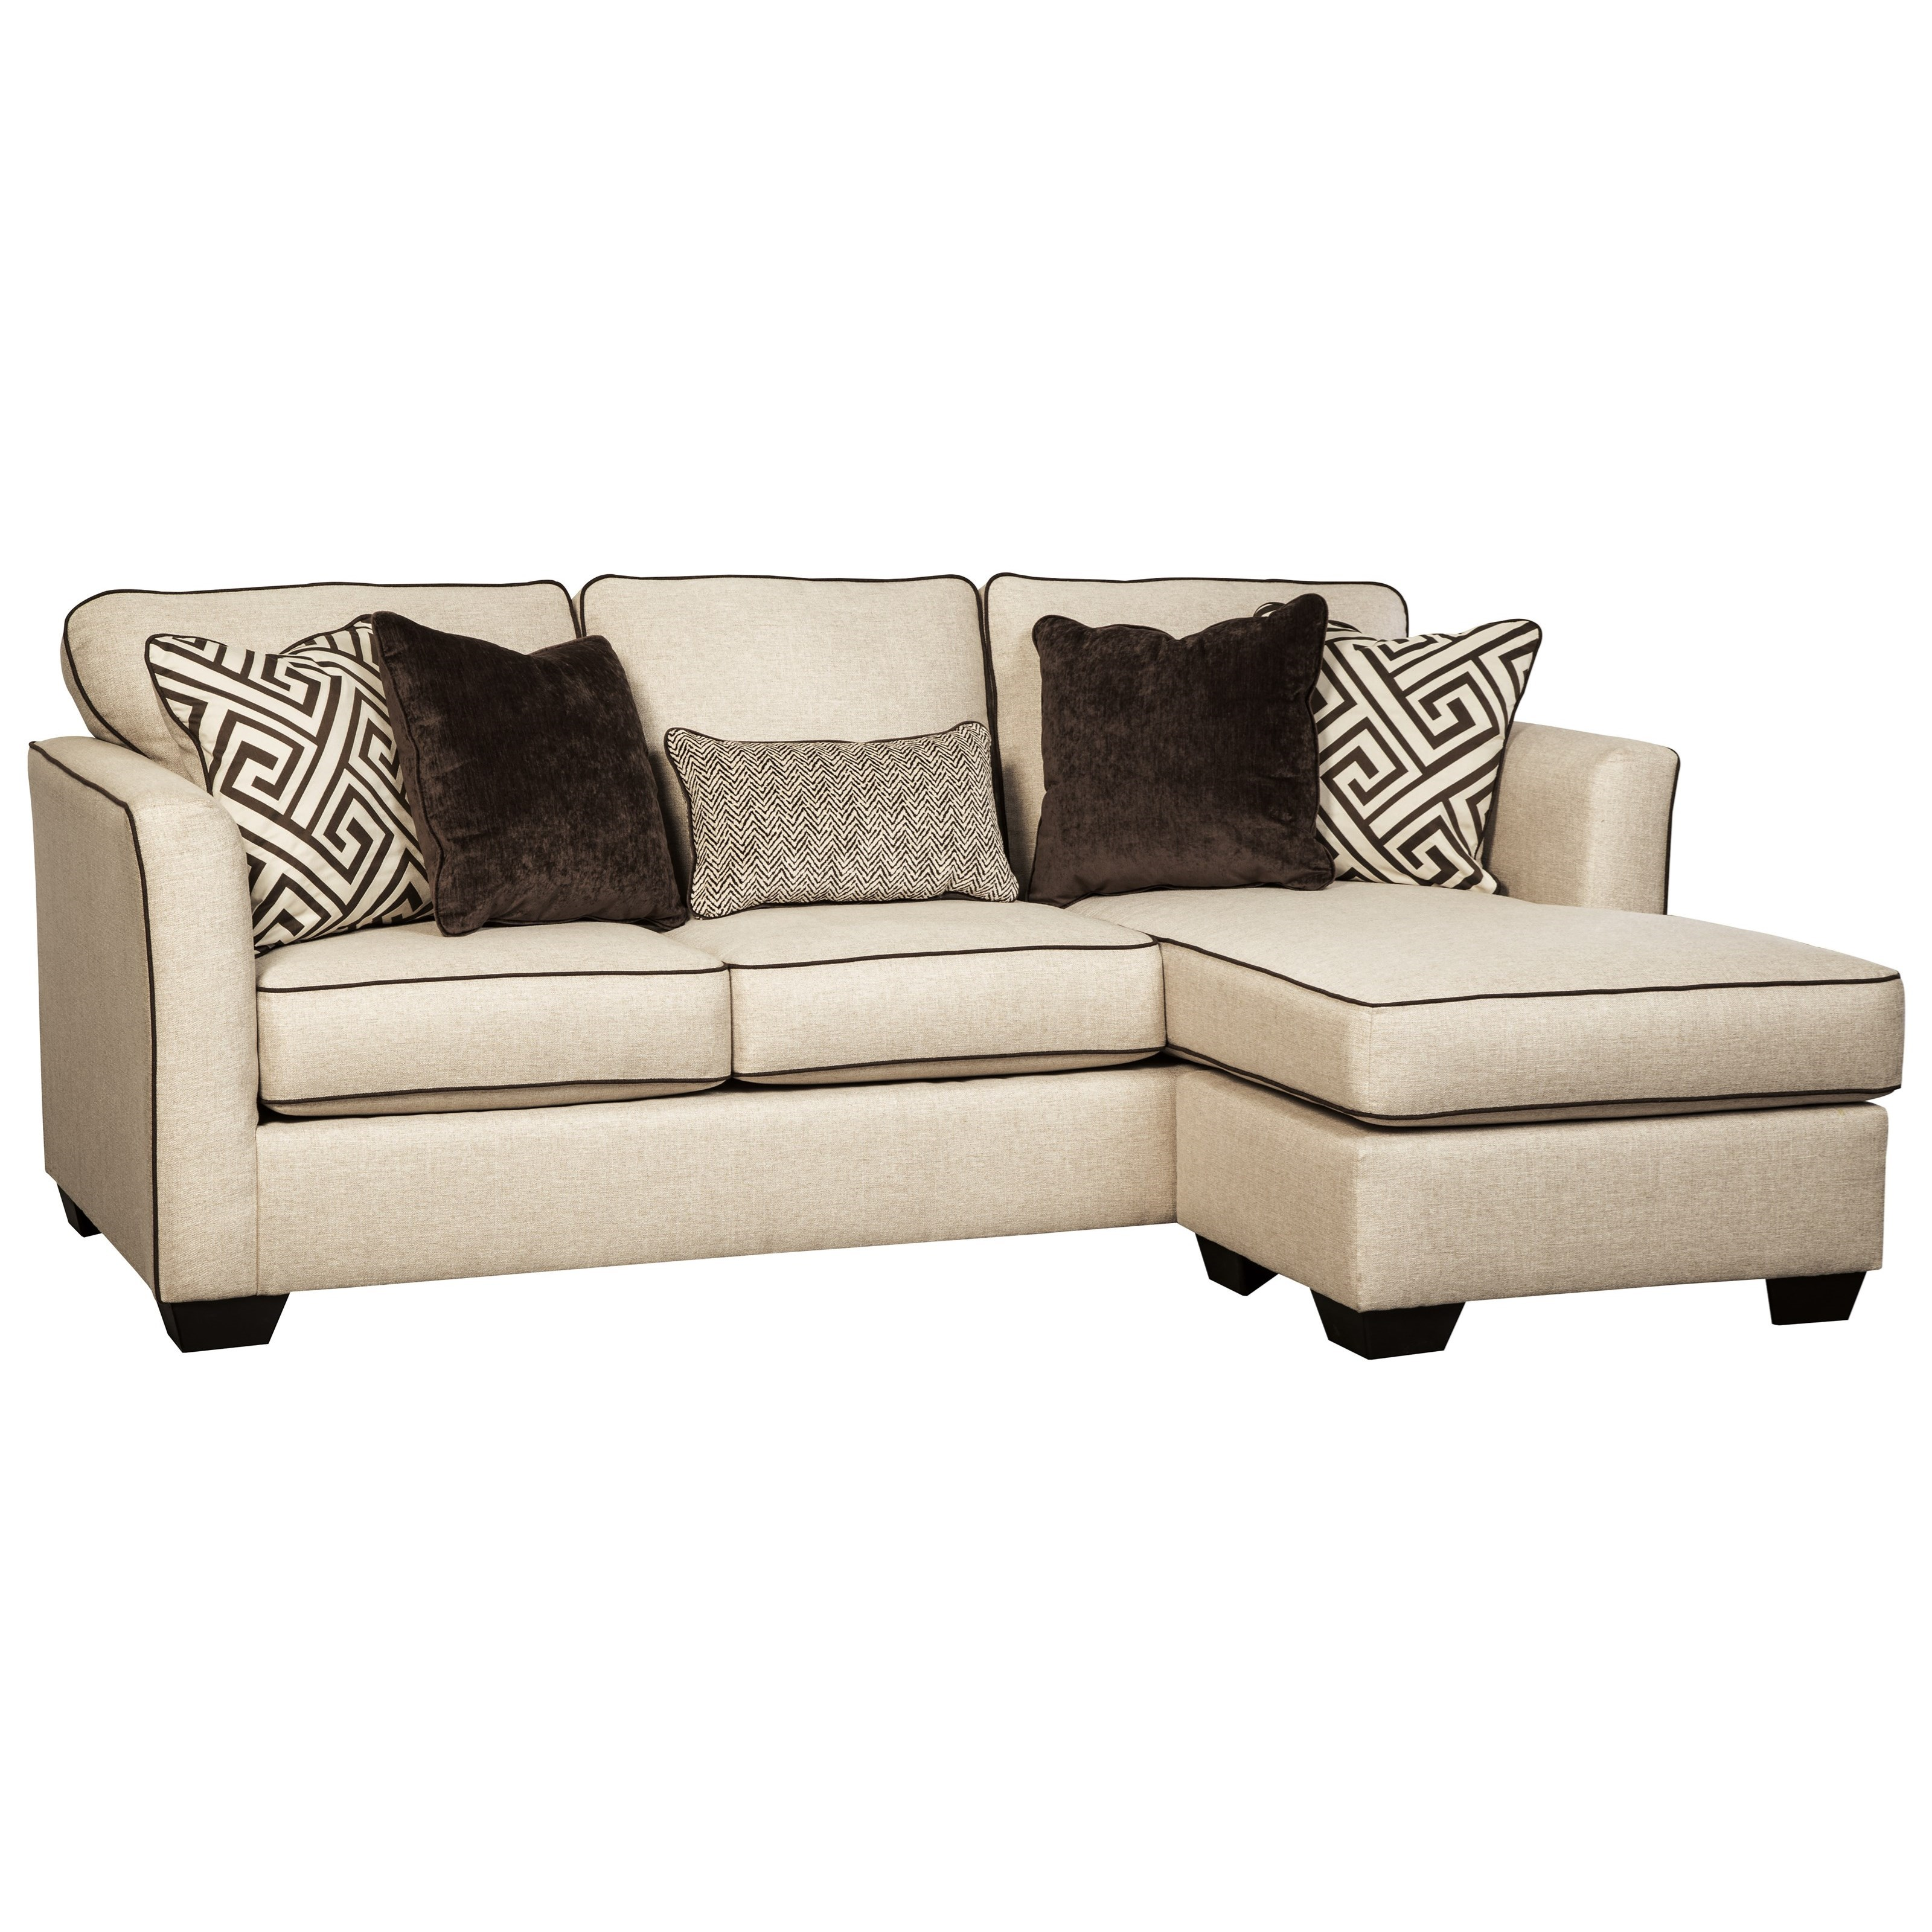 Benchcraft Carlinworth Sofa Chaise - Item Number: 8440118